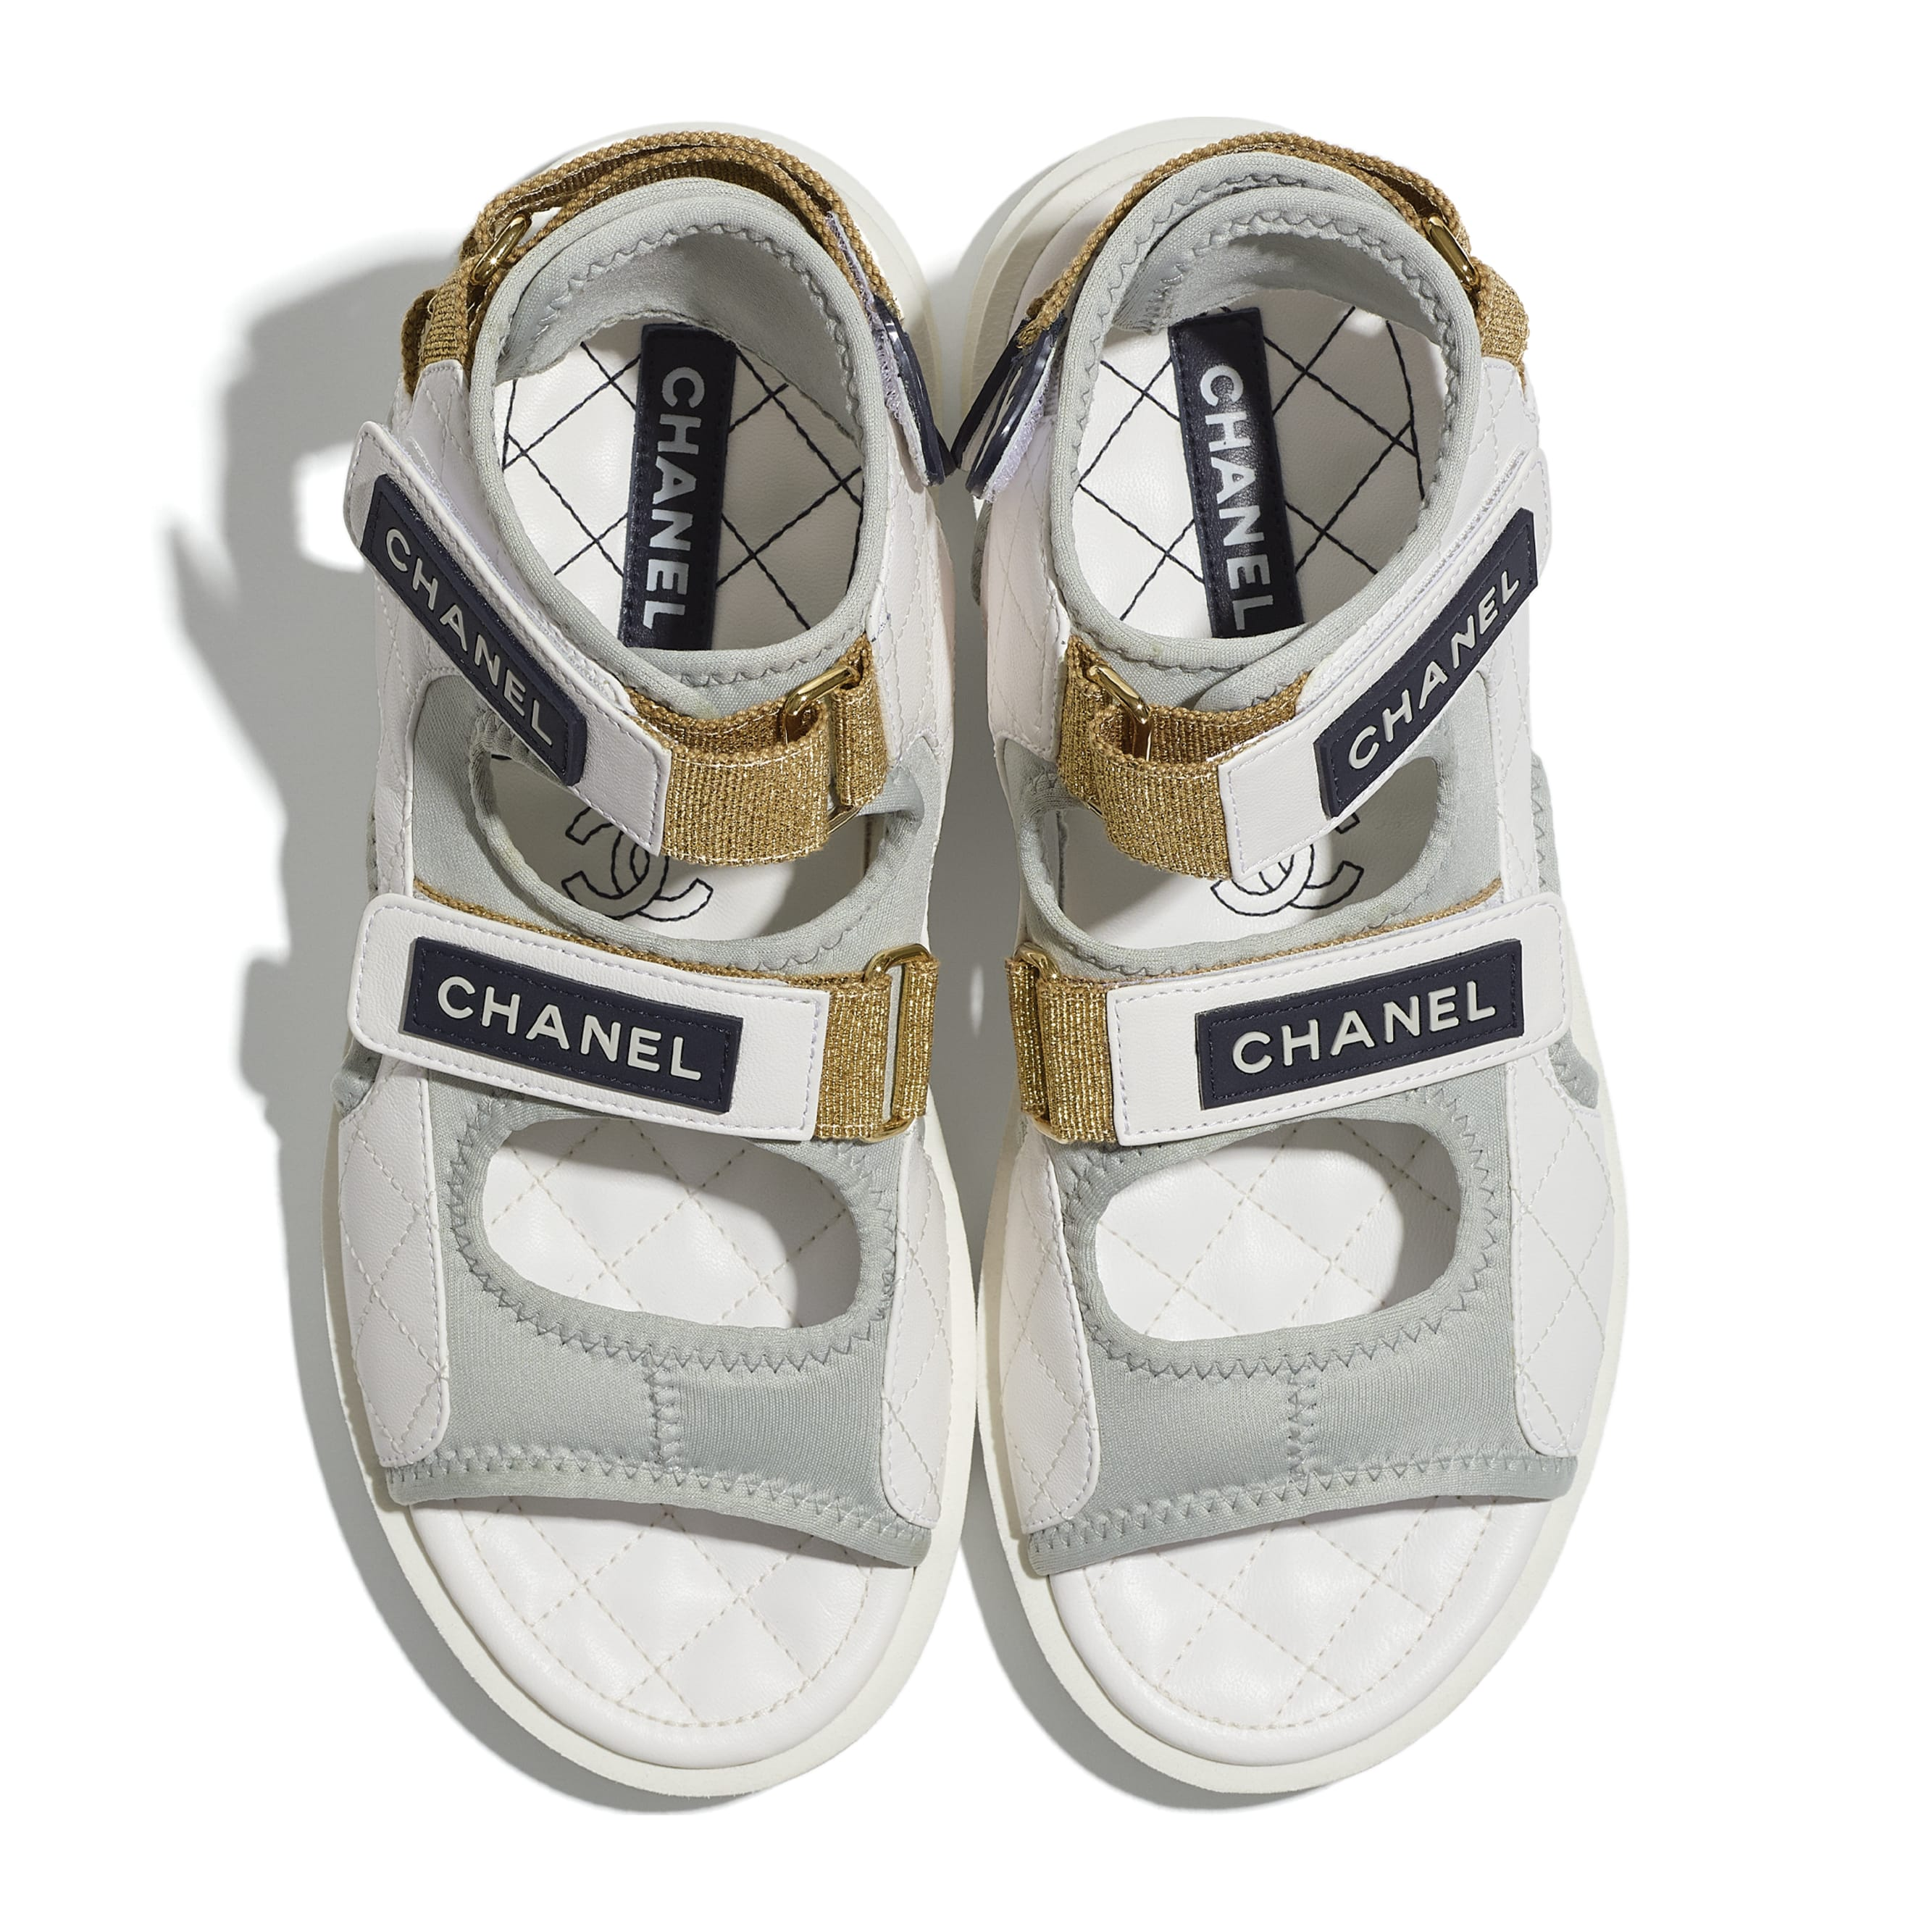 Sandals - White, Light Grey & Navy Blue - Goatskin, Fabric & TPU - CHANEL - Extra view - see standard sized version